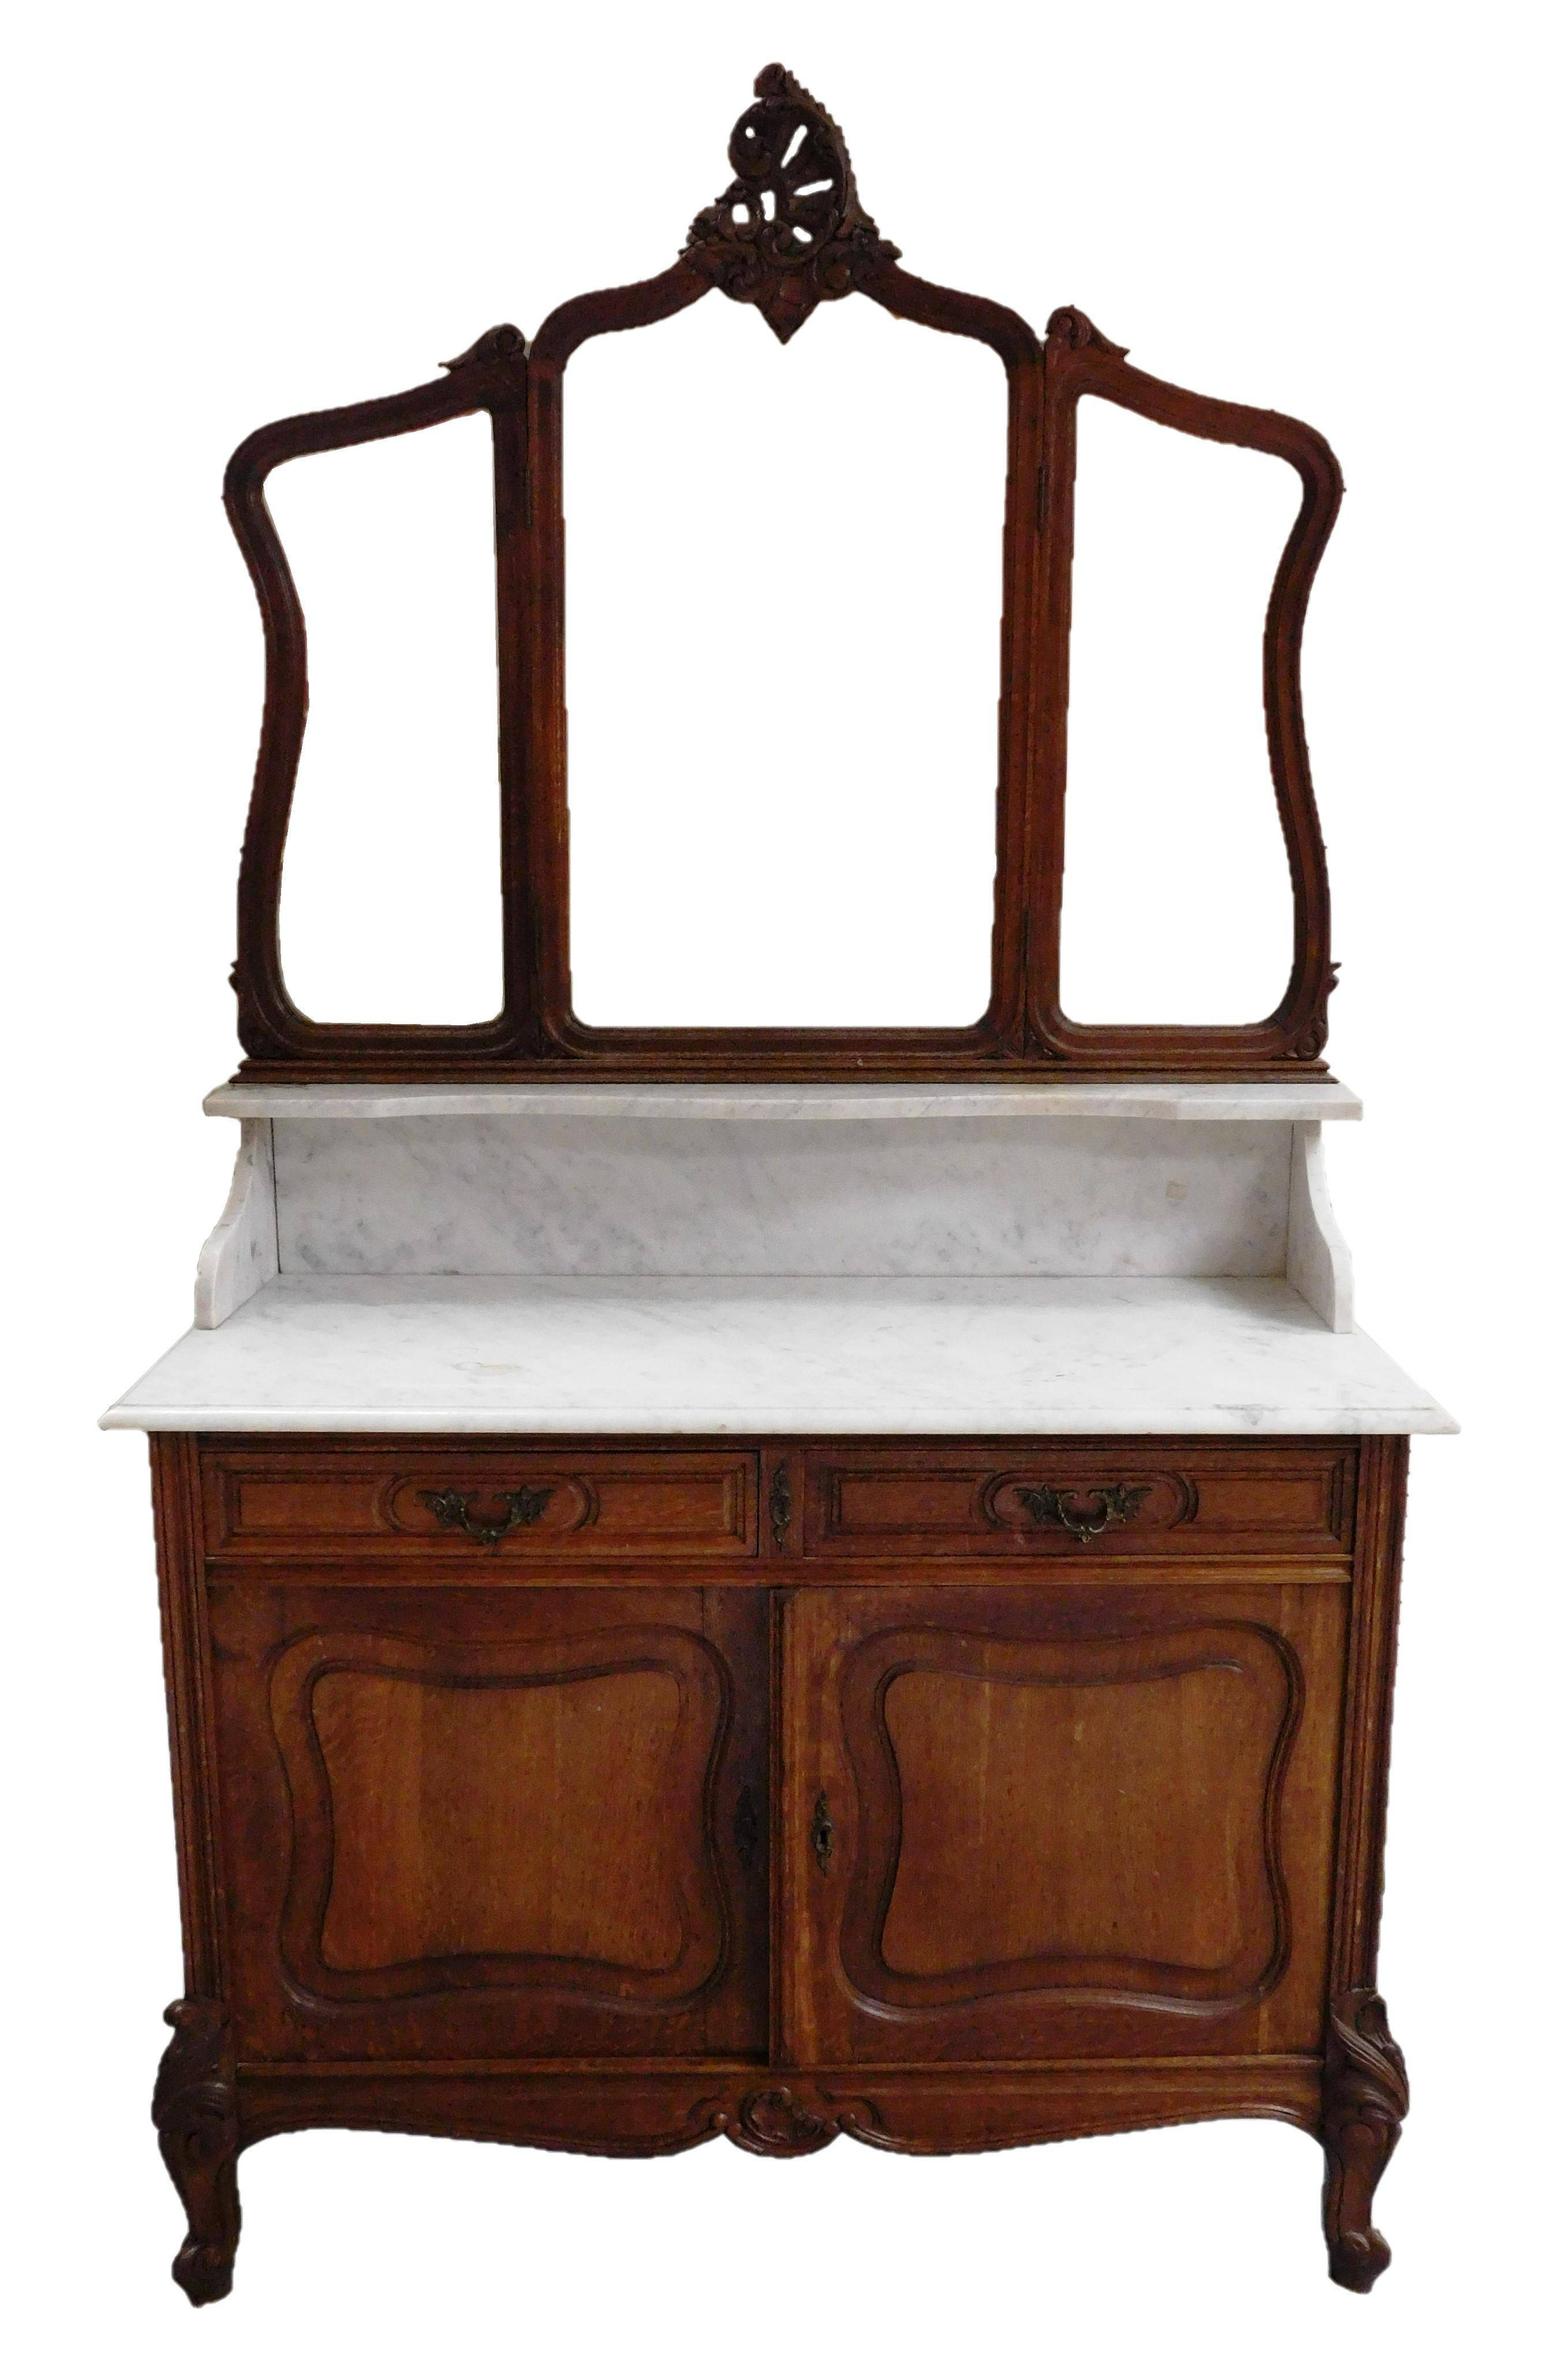 Louis XV style bureau, white marble top and back splash, beveled three section mirror, oak, dismantles into several pieces, wear con...